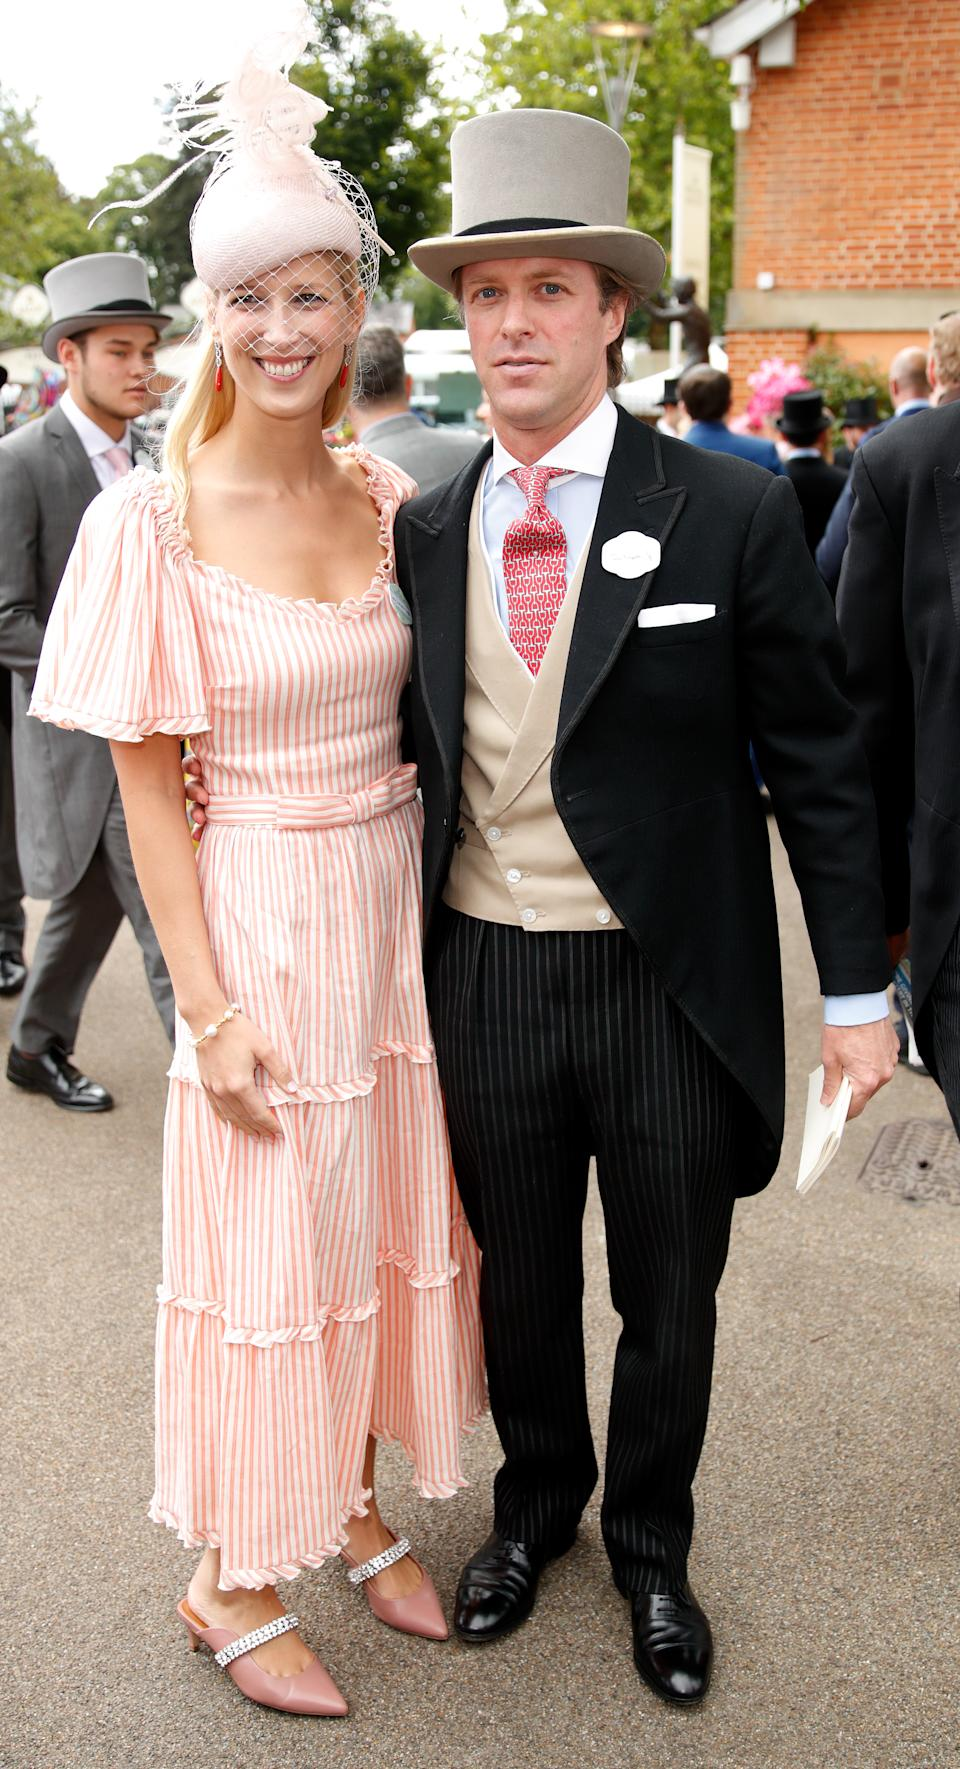 """Newlyweds Lady Gabriella Windsor and Thomas Kingston attended Ladies Day. Lady Gabriella wore a <a href=""""https://fave.co/2KB952f"""" rel=""""nofollow noopener"""" target=""""_blank"""" data-ylk=""""slk:striped midi dress"""" class=""""link rapid-noclick-resp"""">striped midi dress</a> by her wedding dress designer Luisa Beccaria and pink crystal embellished mules (£139) from <a href=""""https://fave.co/2x8Xb6I"""" rel=""""nofollow noopener"""" target=""""_blank"""" data-ylk=""""slk:Kurt Geiger"""" class=""""link rapid-noclick-resp"""">Kurt Geiger</a>.<em> [Photo: Getty]</em>"""